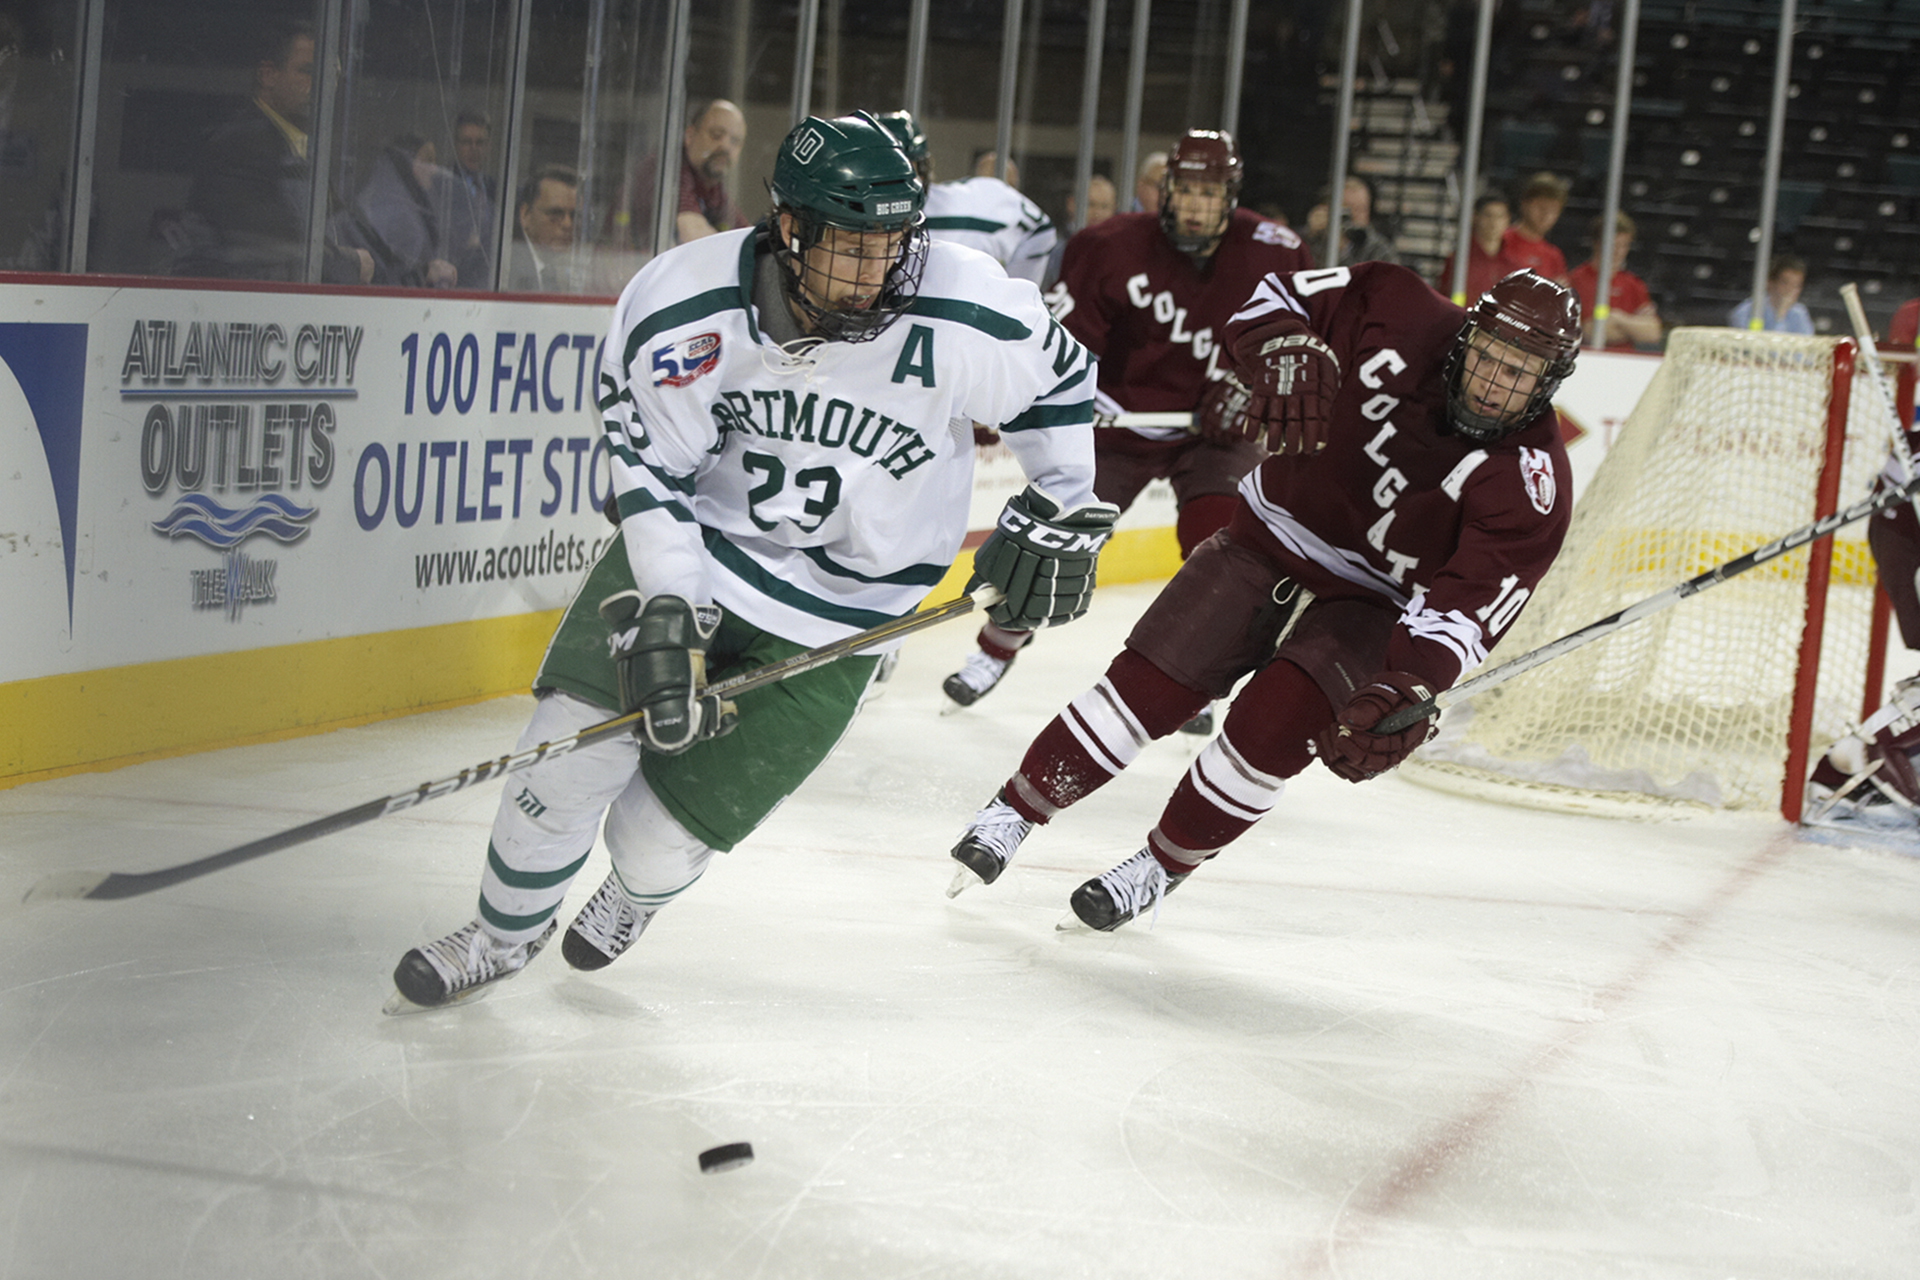 College Hockey: ECAC Hockey Tournament: Dartmouth Adam Estoclet (23) in action vs Colgate during 3rd Place Game at Boardwalk Hall.Atlantic City, NJ 3/19/2011CREDIT: Lou Capozzola (Photo by Lou Capozzola /Sports Illustrated/Getty Images)(Set Number: X85650 TK1 R6 F19 )